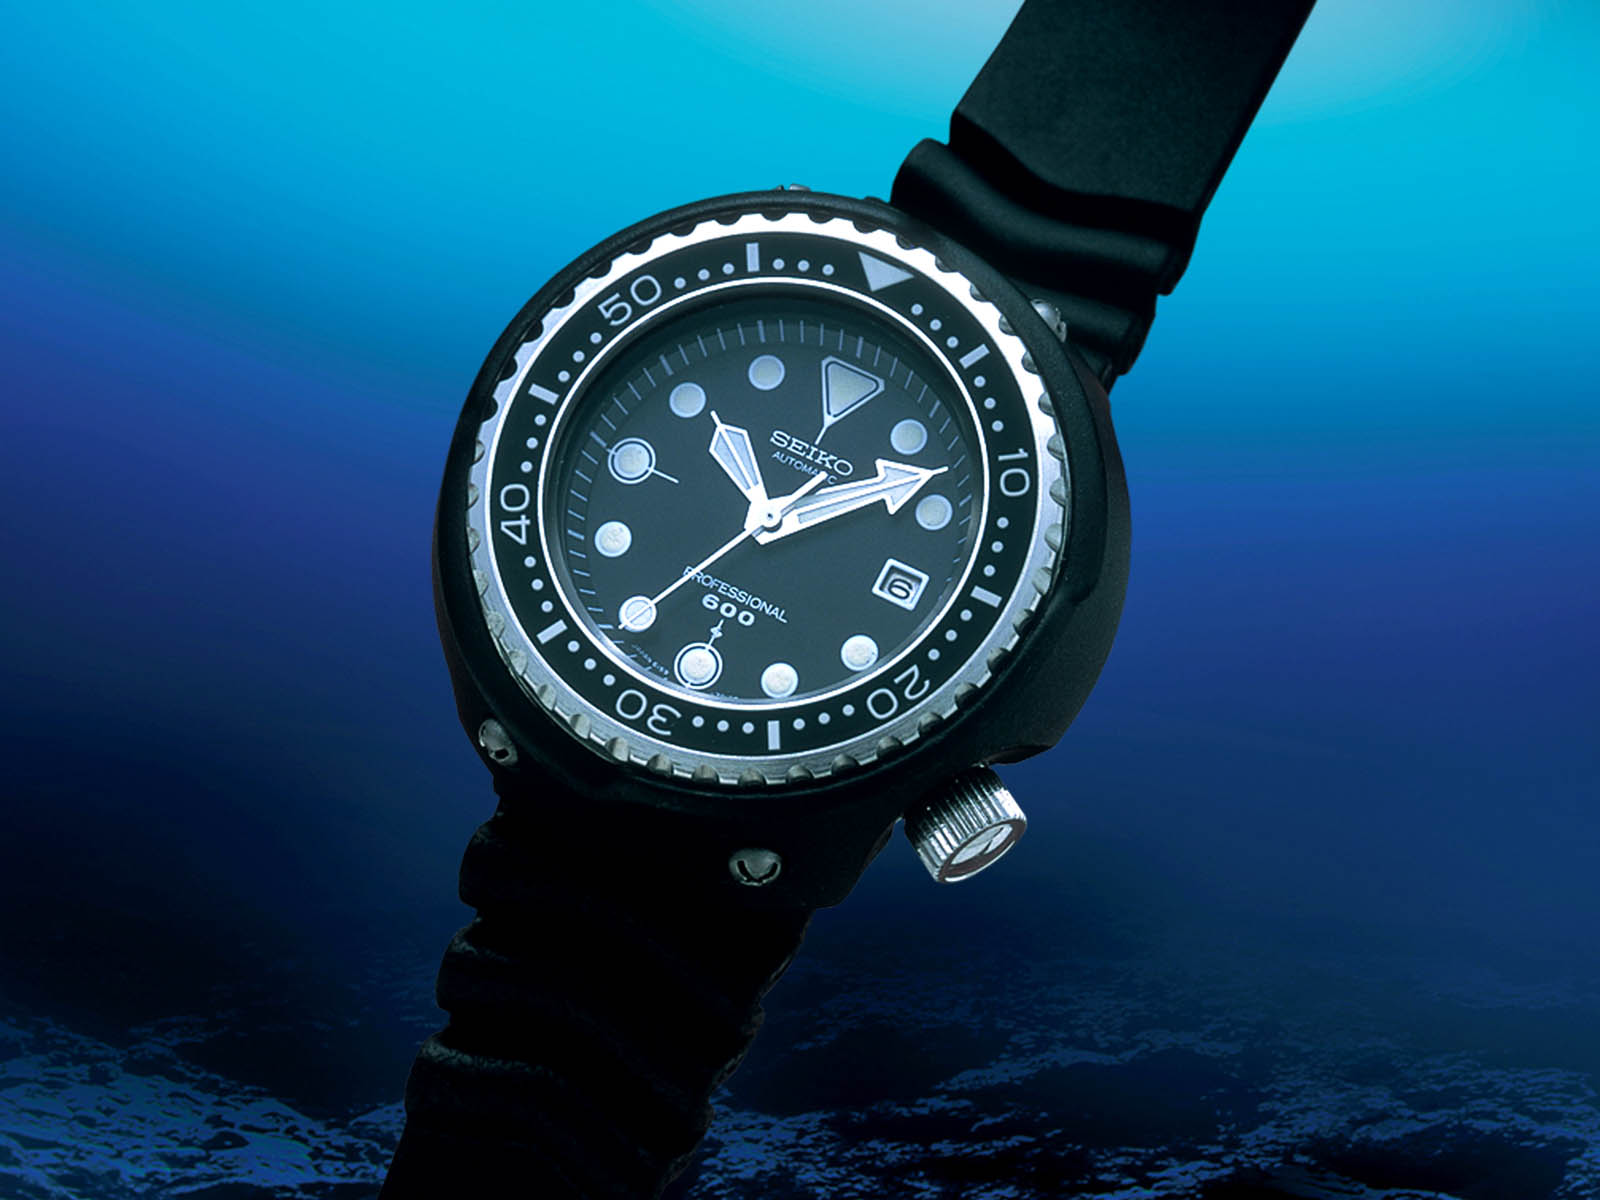 seiko-professional-diver-s-600m-the-world-s-first-1975.jpg